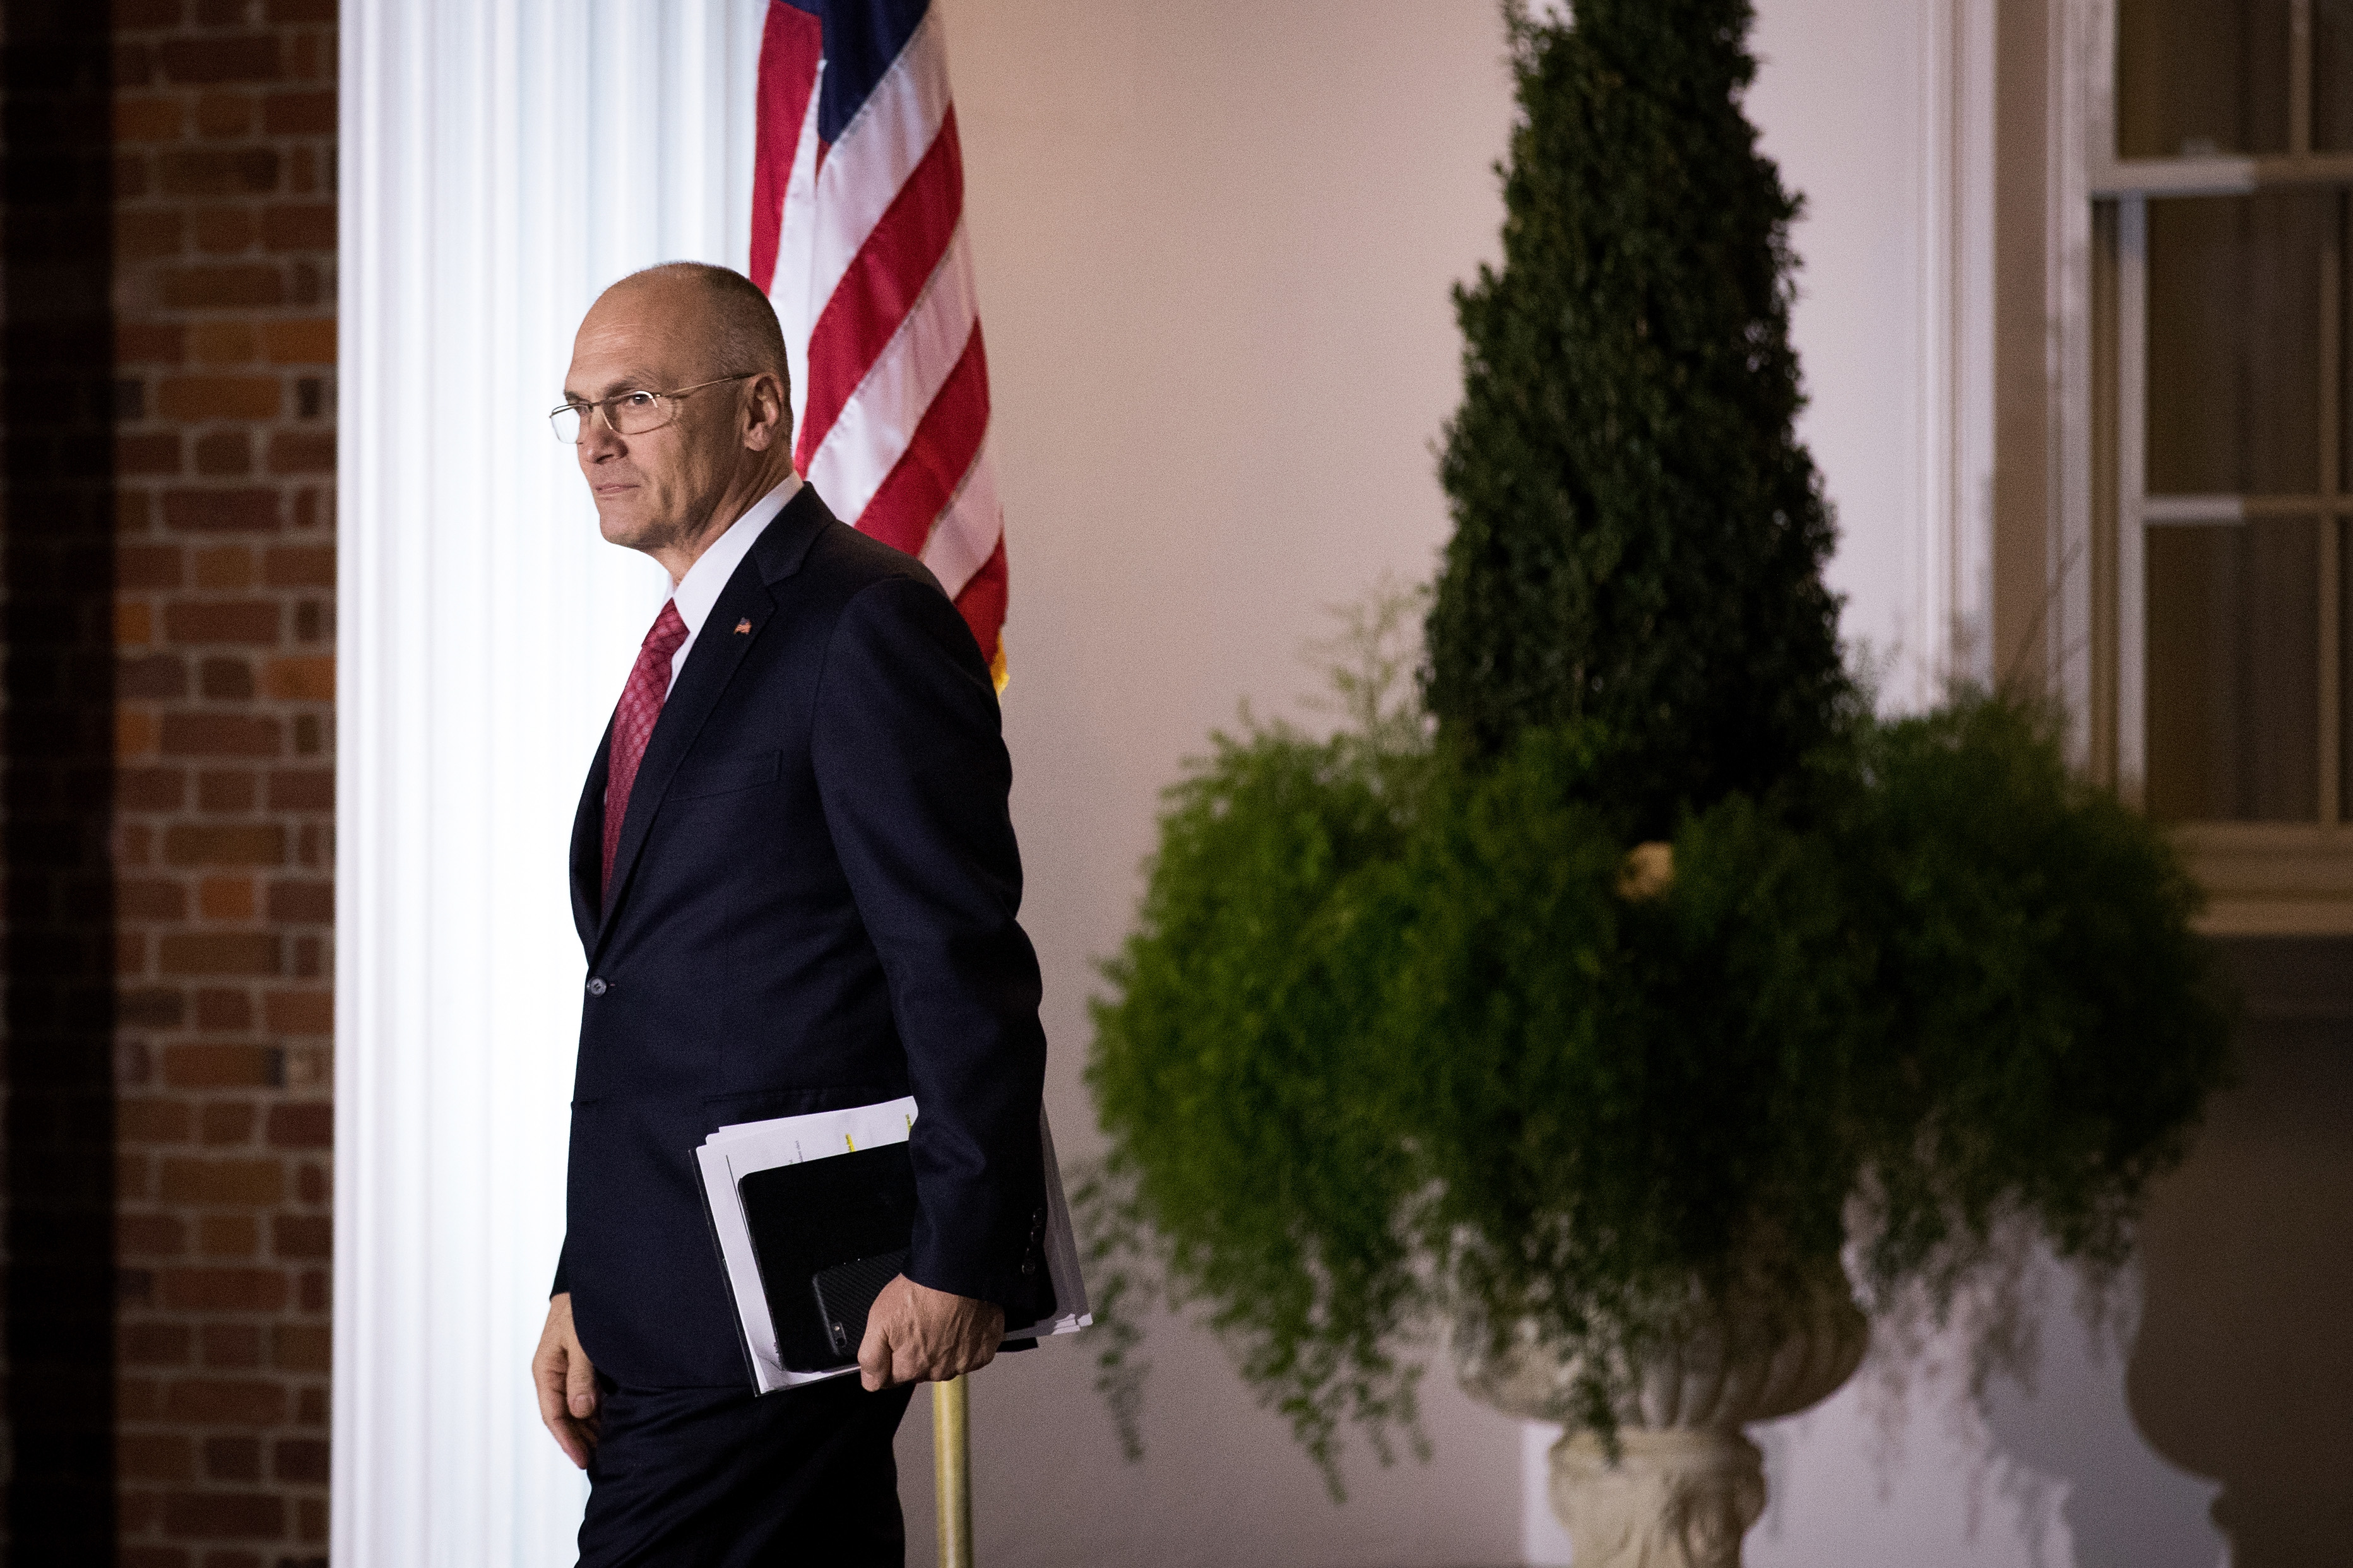 Andrew Puzder, chief executive of CKE Restaurants, exits after his meeting with president-elect Donald Trump at Trump International Golf Club, November 19, 2016 in Bedminster Township, New Jersey. (Photo by Drew Angerer--Getty Images)